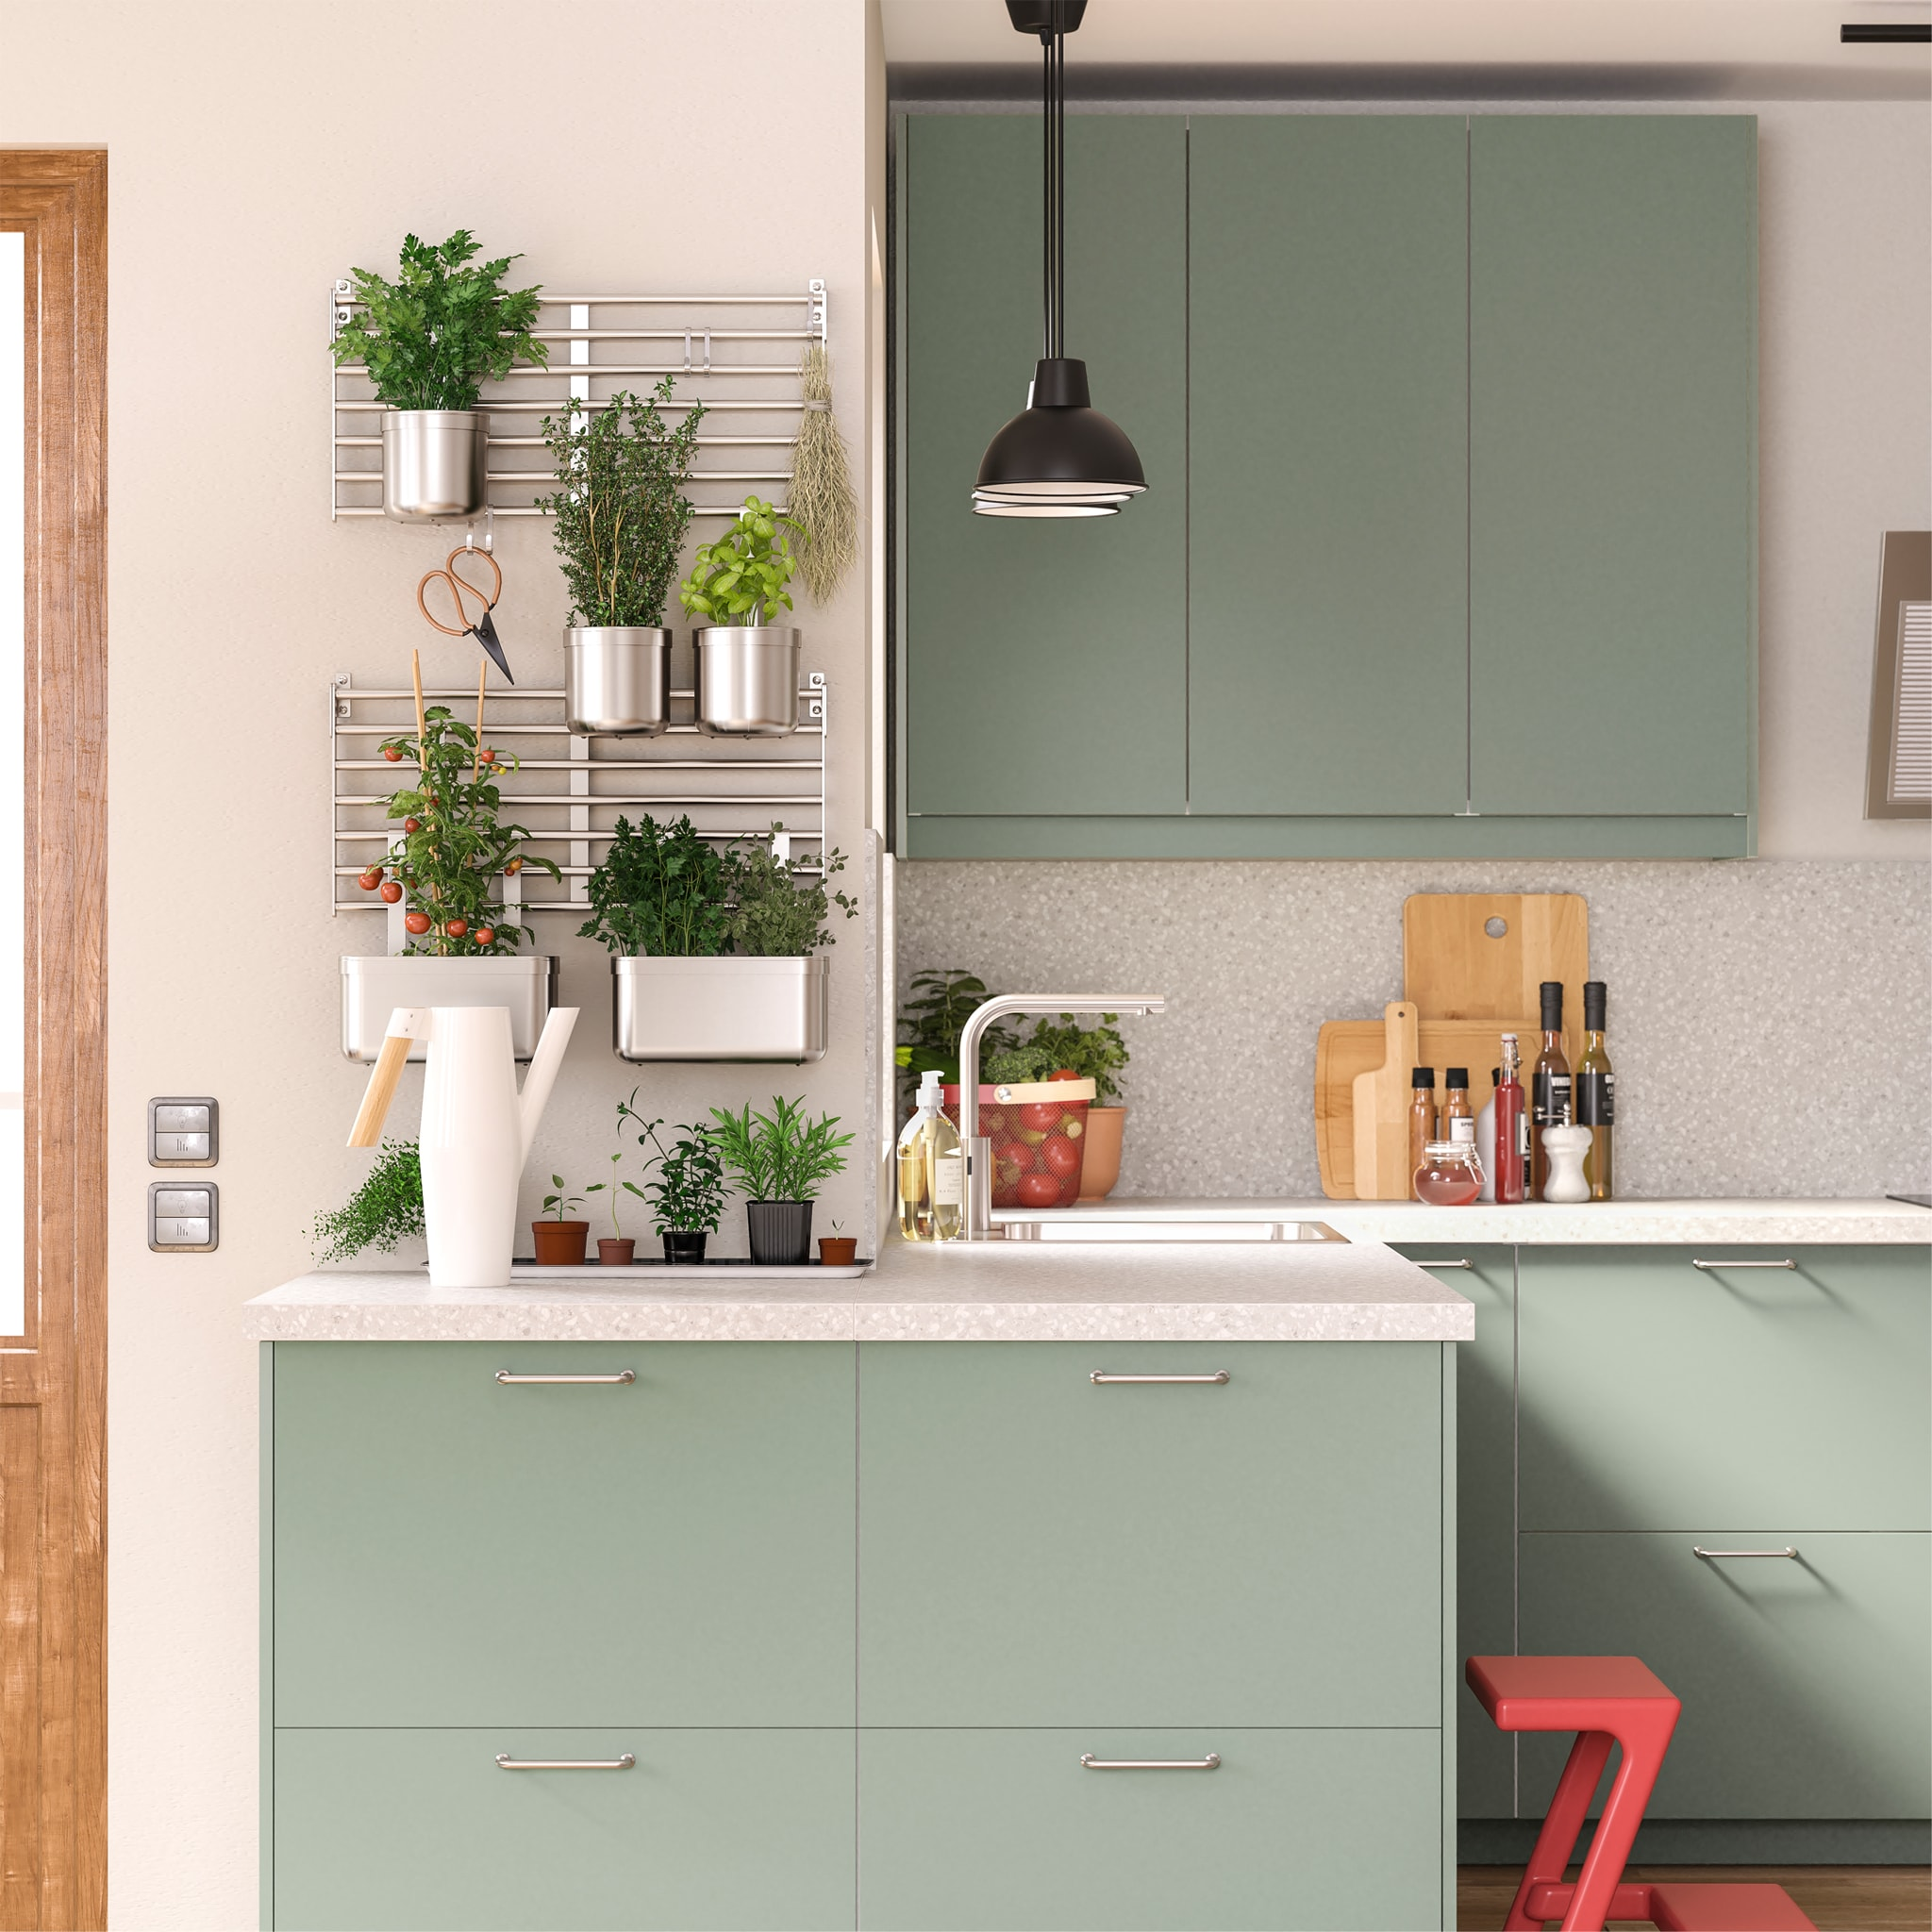 Grey-green kitchen with wall-mounted wall grids in stainless steel with plant pots that hold different herbs and vegetables.